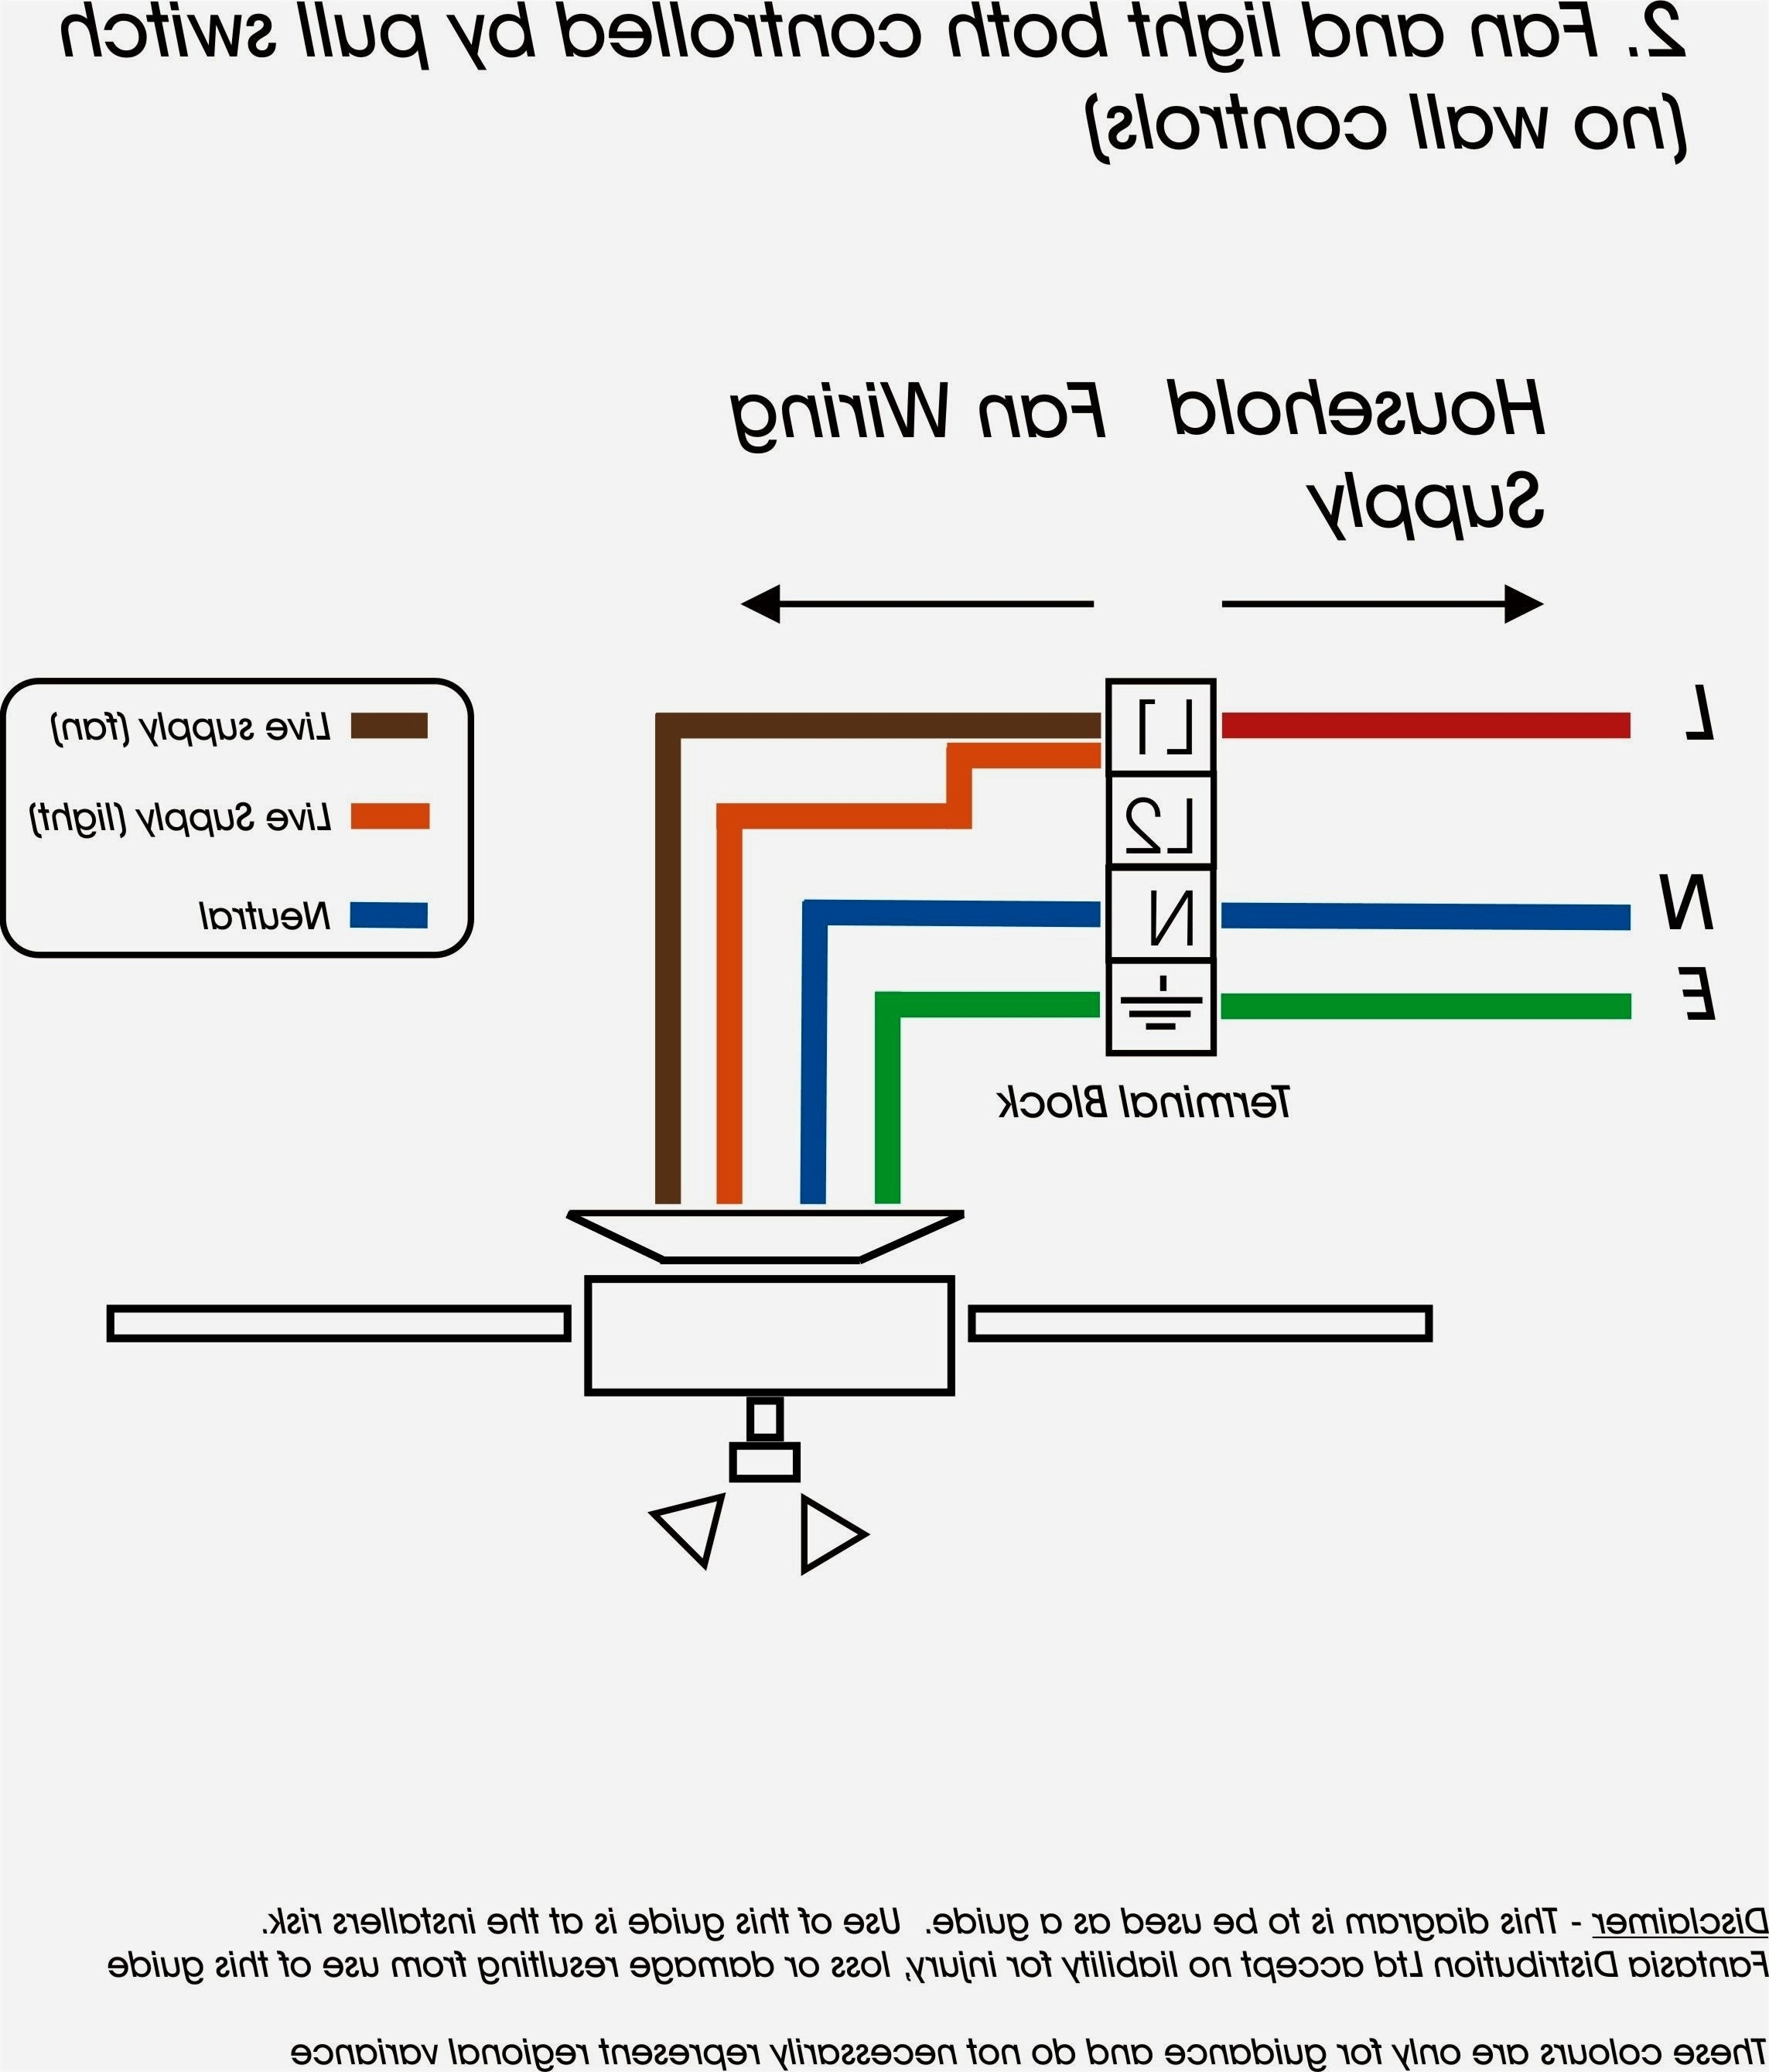 casablanca ceiling fan wiring diagram Collection-Wiring Diagram for Bathroom Fan with Light Simple Casablanca Fan Wiring Diagram Gallery 17-p